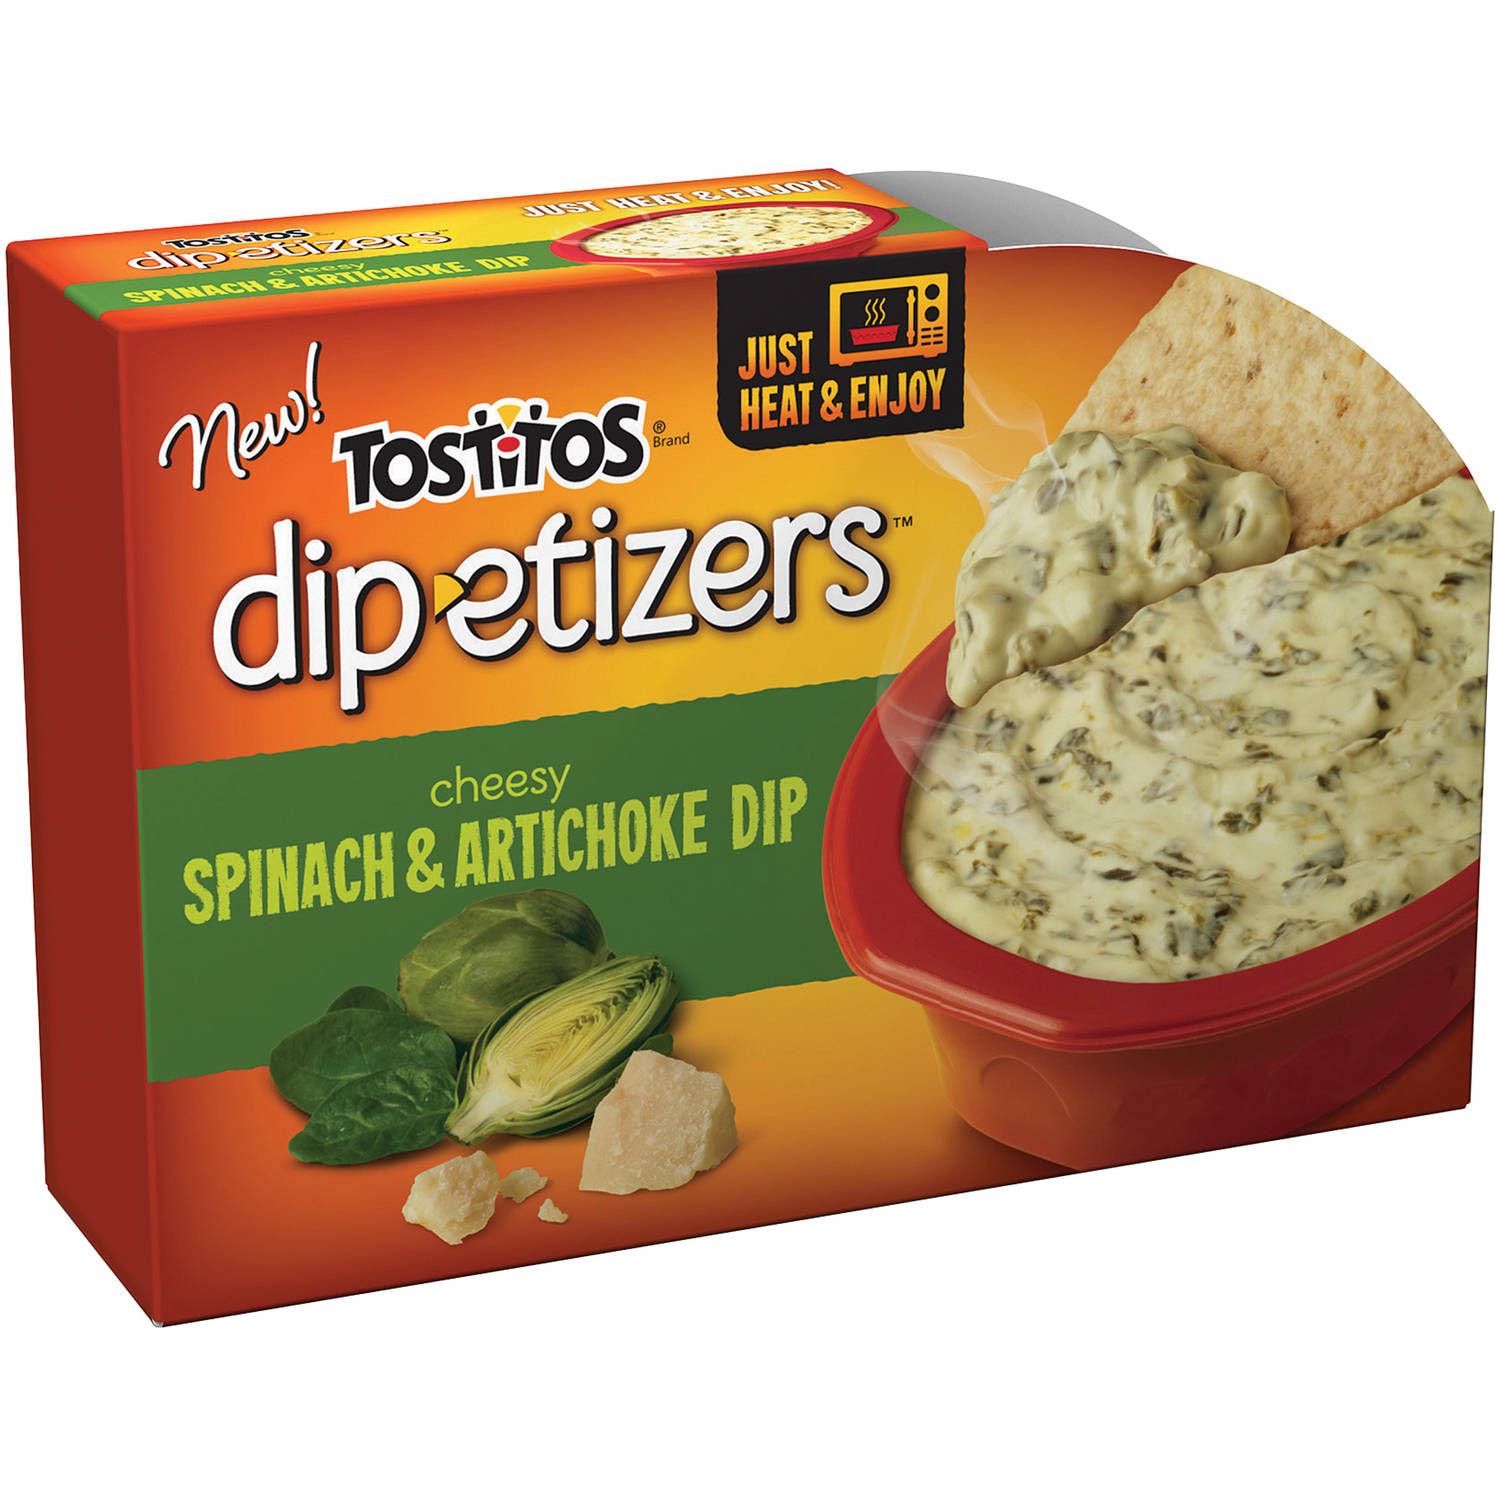 Tostitos Dip-etizers Cheesy Spinach & Artichoke Dip, 10 oz.